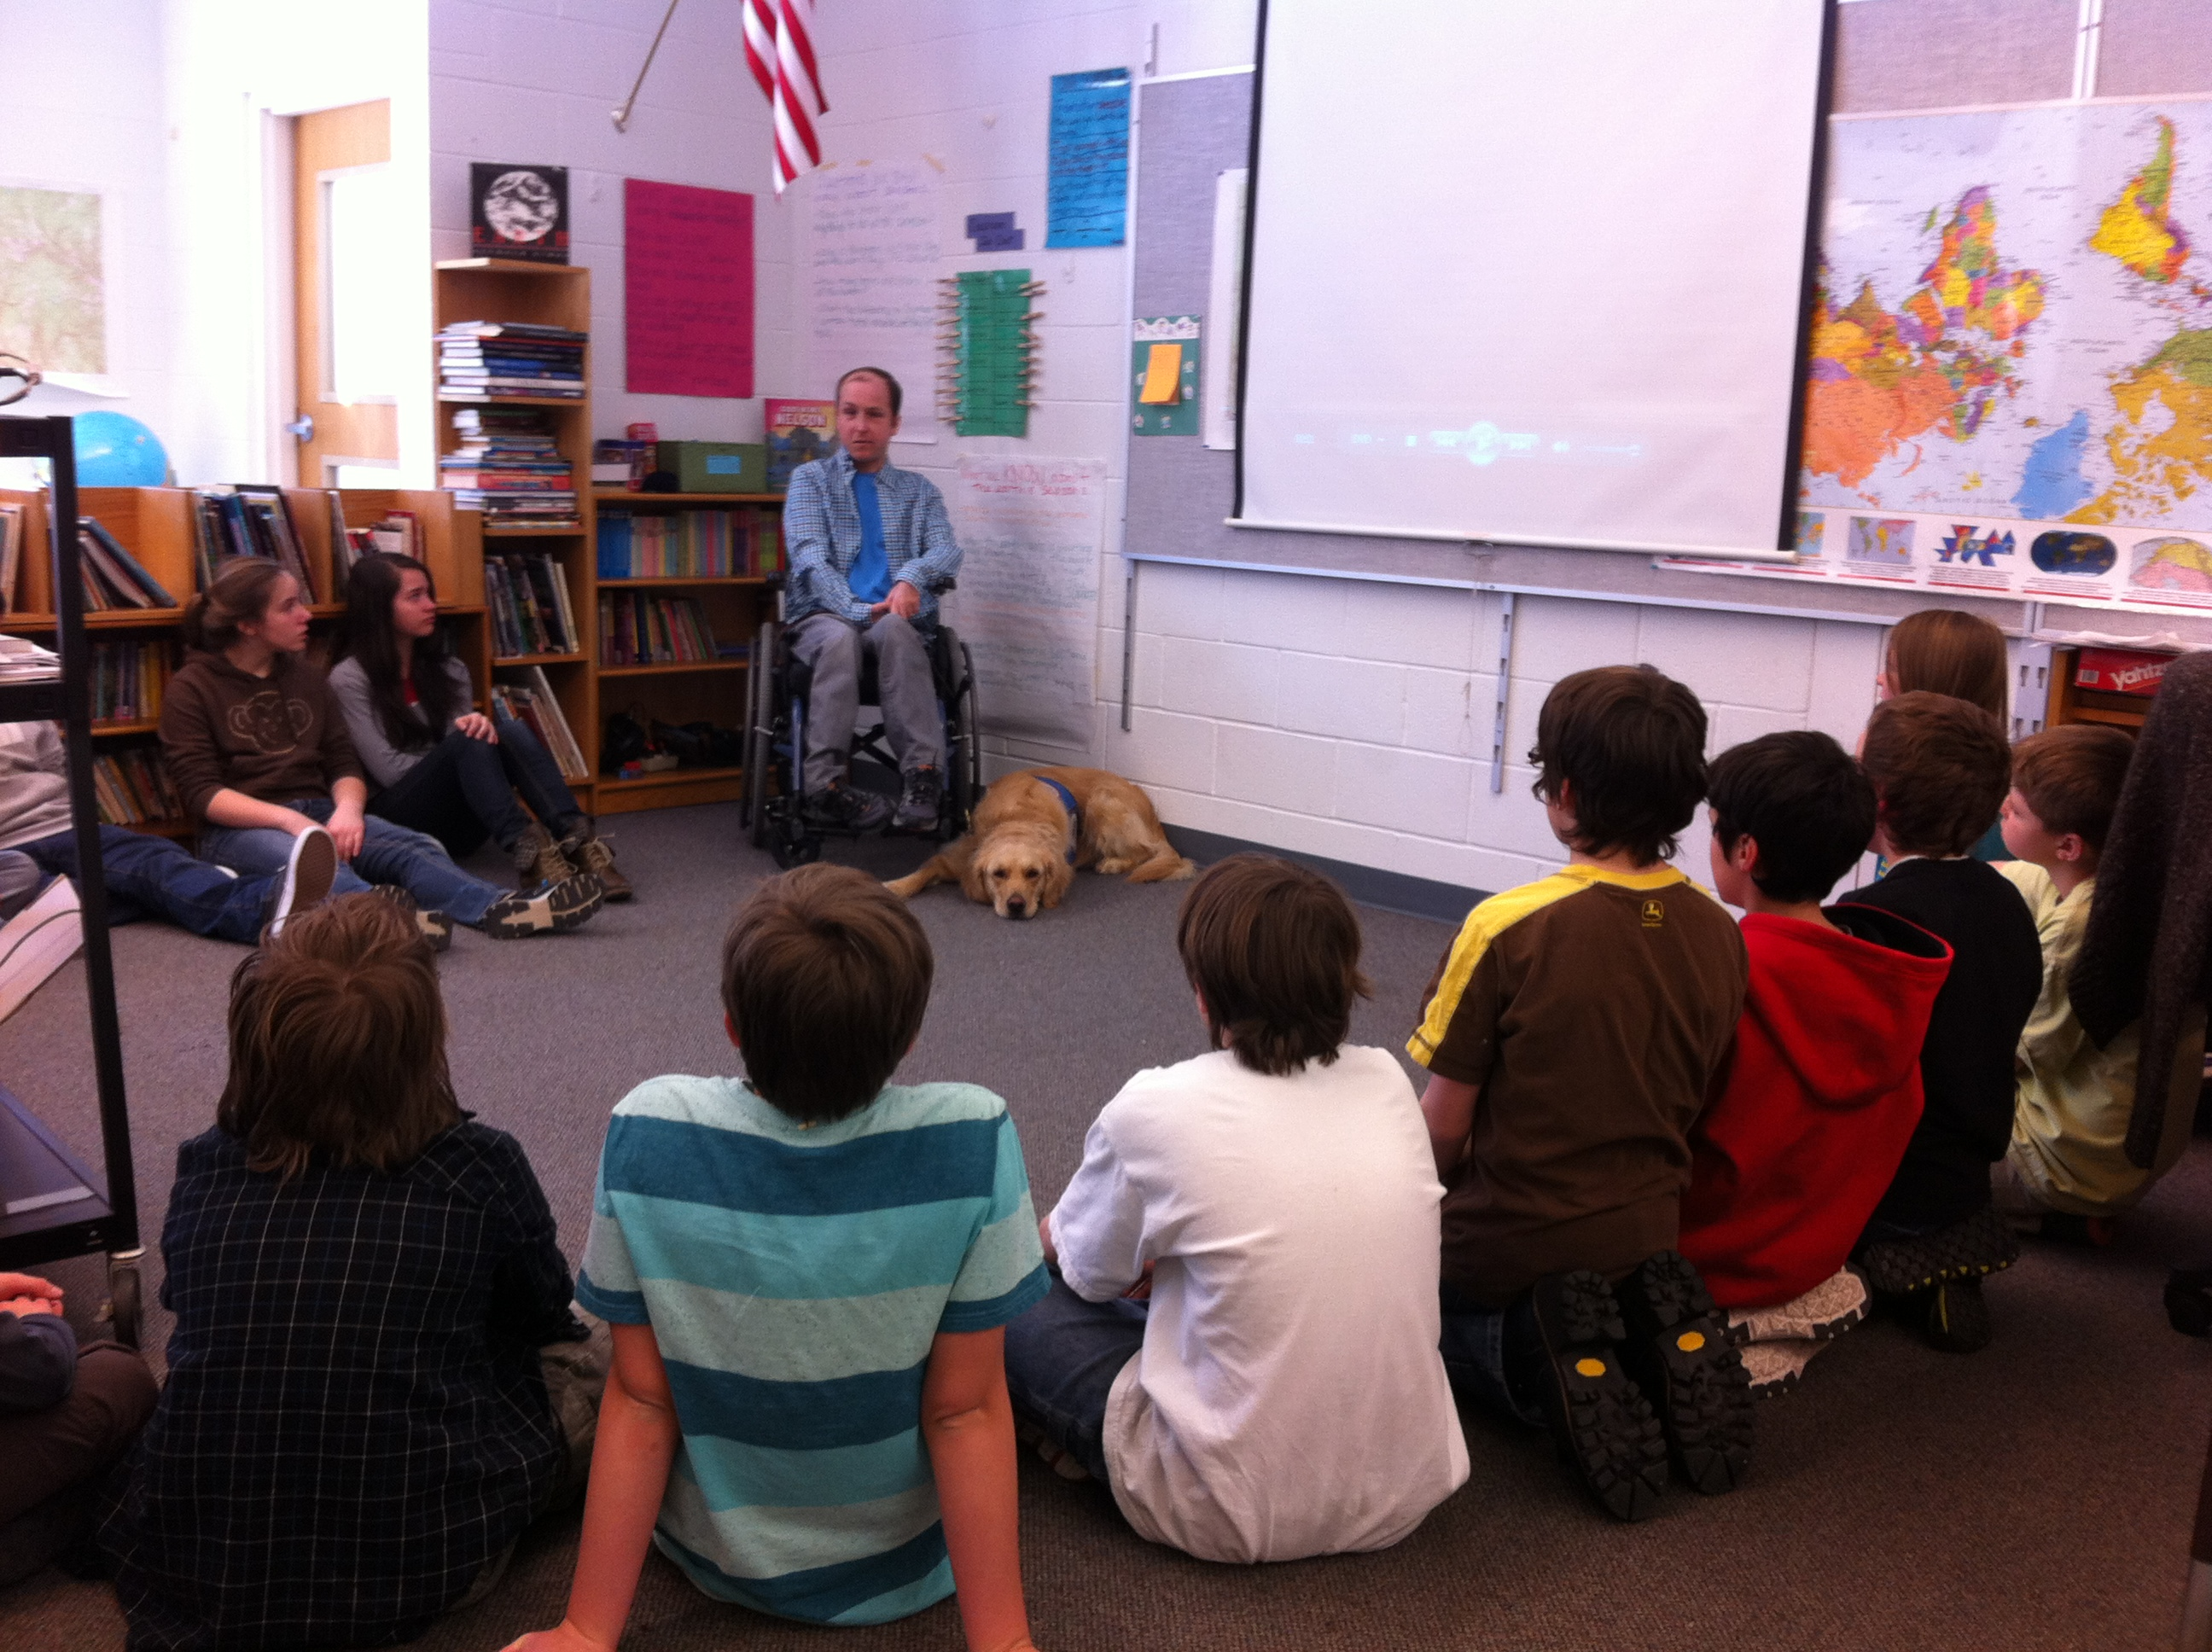 Thomas giving his presentation to the 5th and 6th grade at the Heath Elementary School. Made possible by a grant from the Heath Cultural Council.